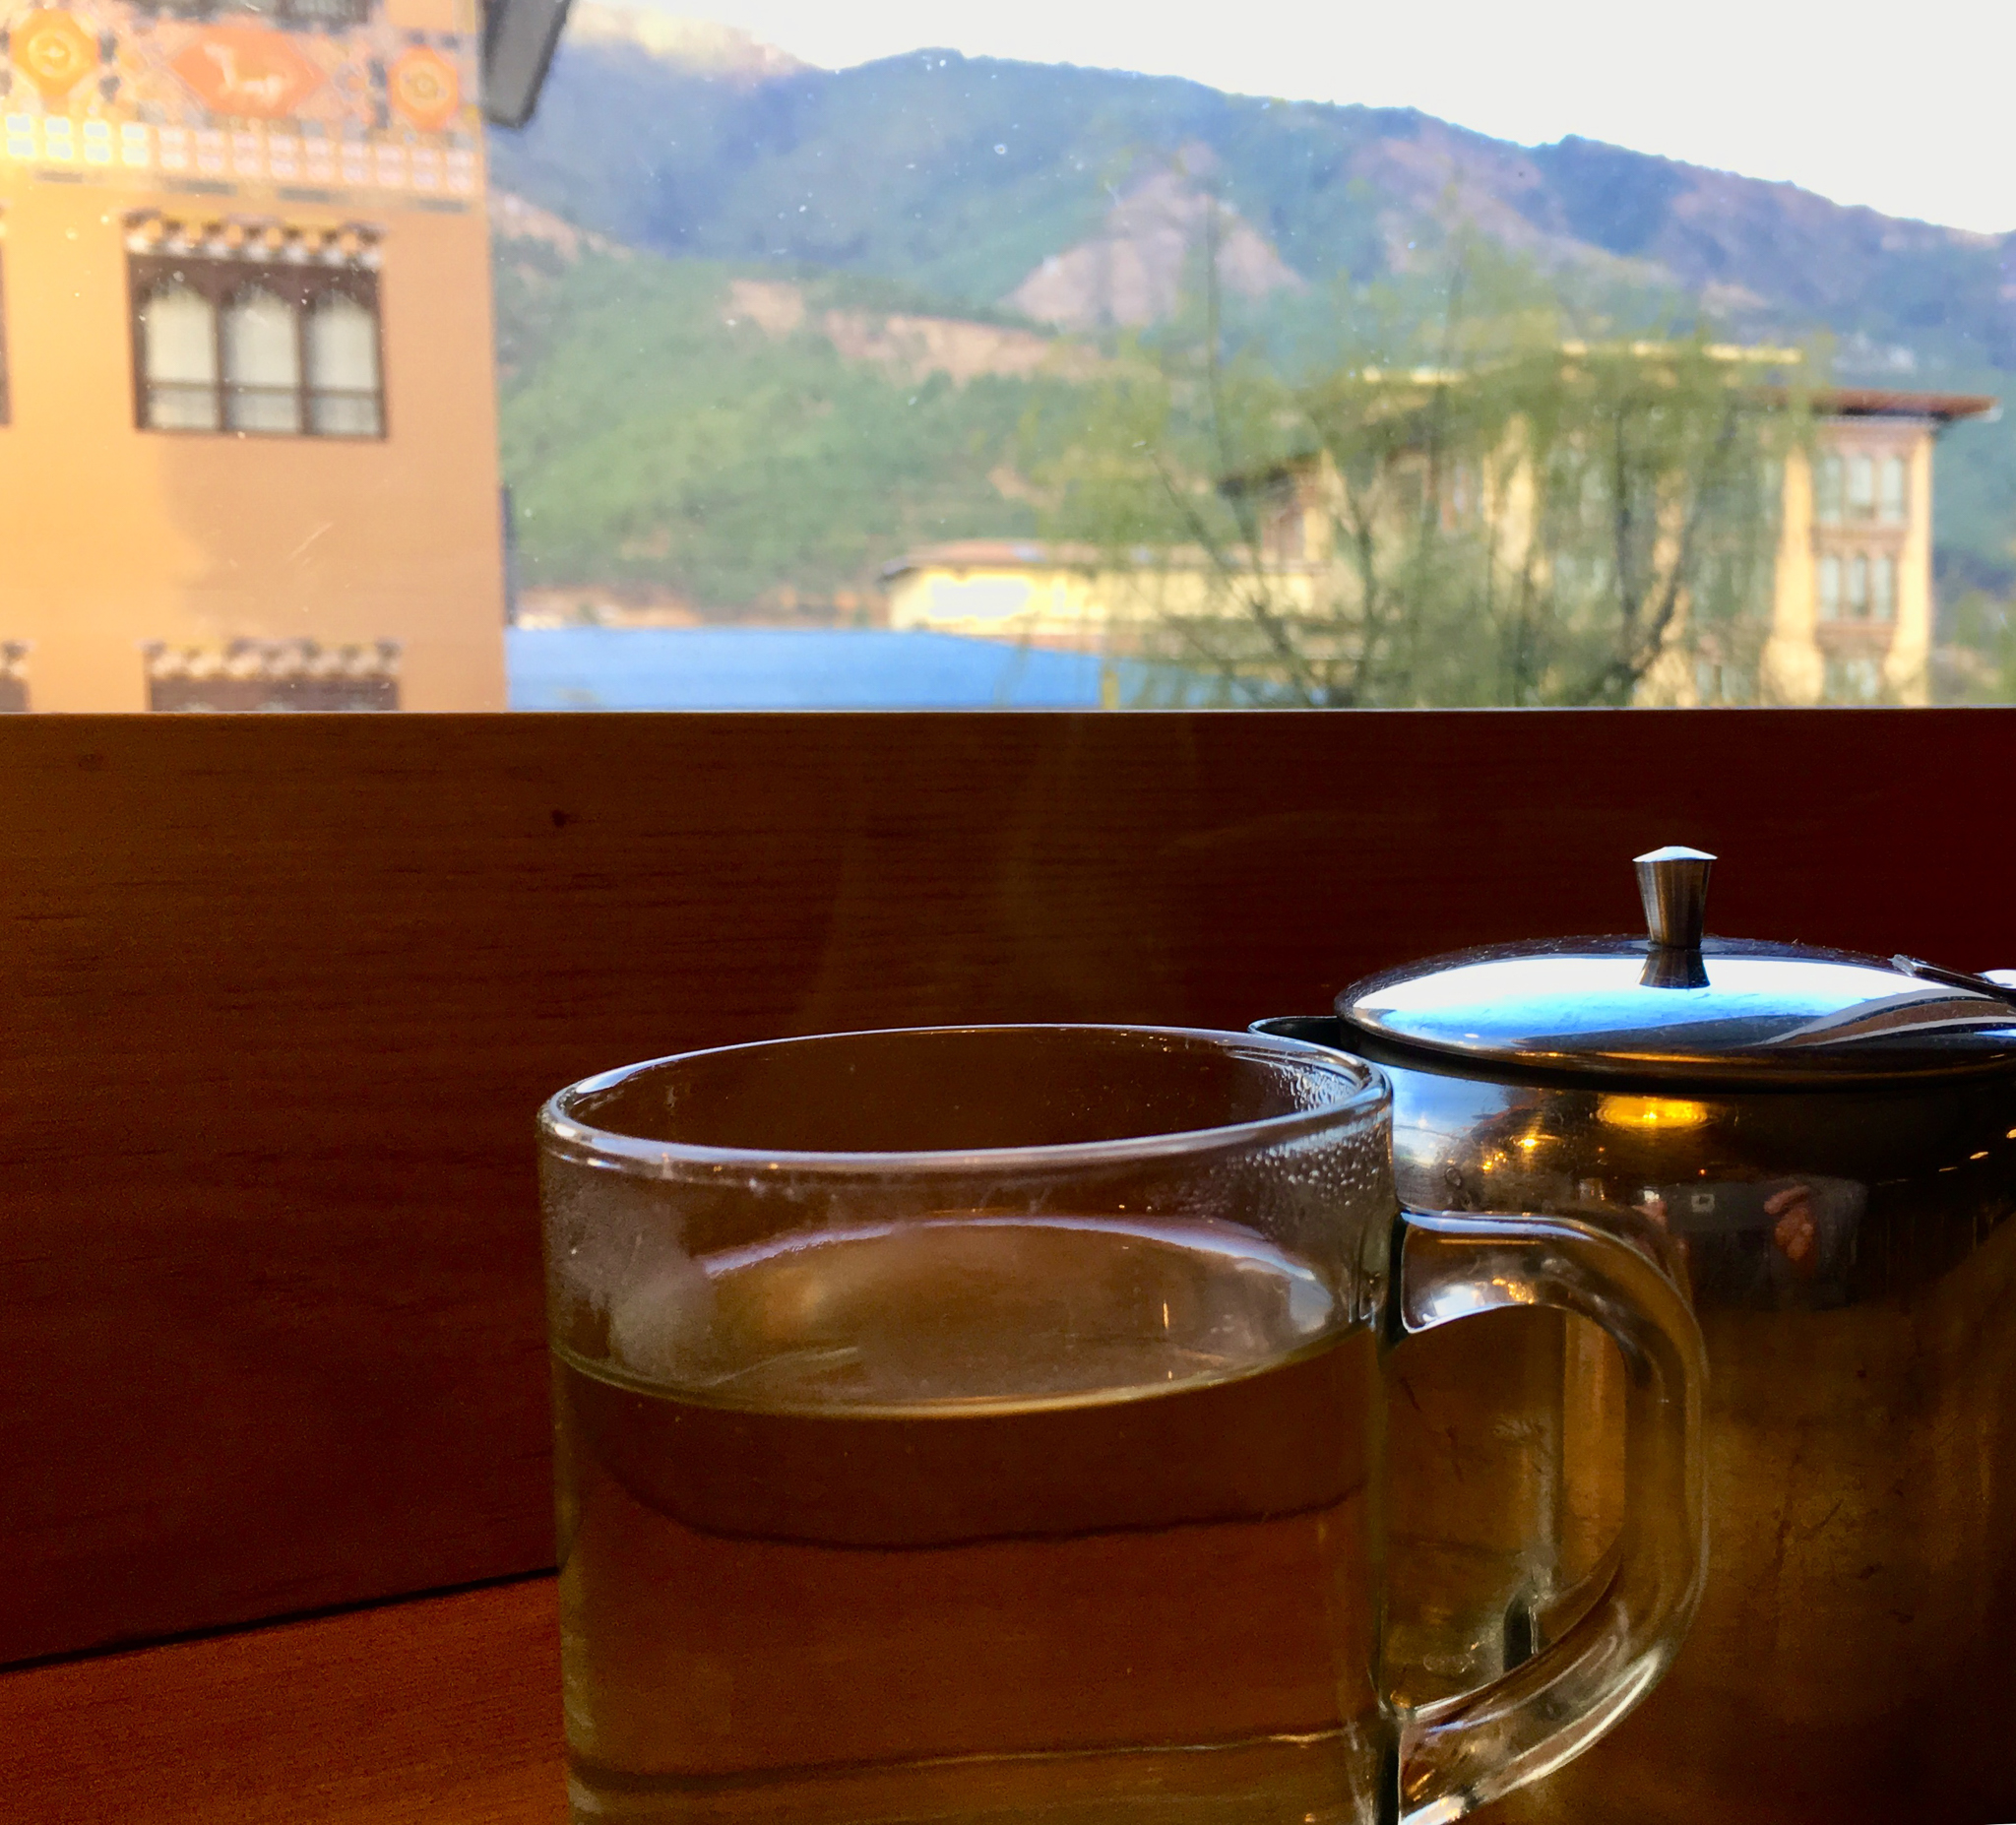 Having some tea while adjusting to the altitude.